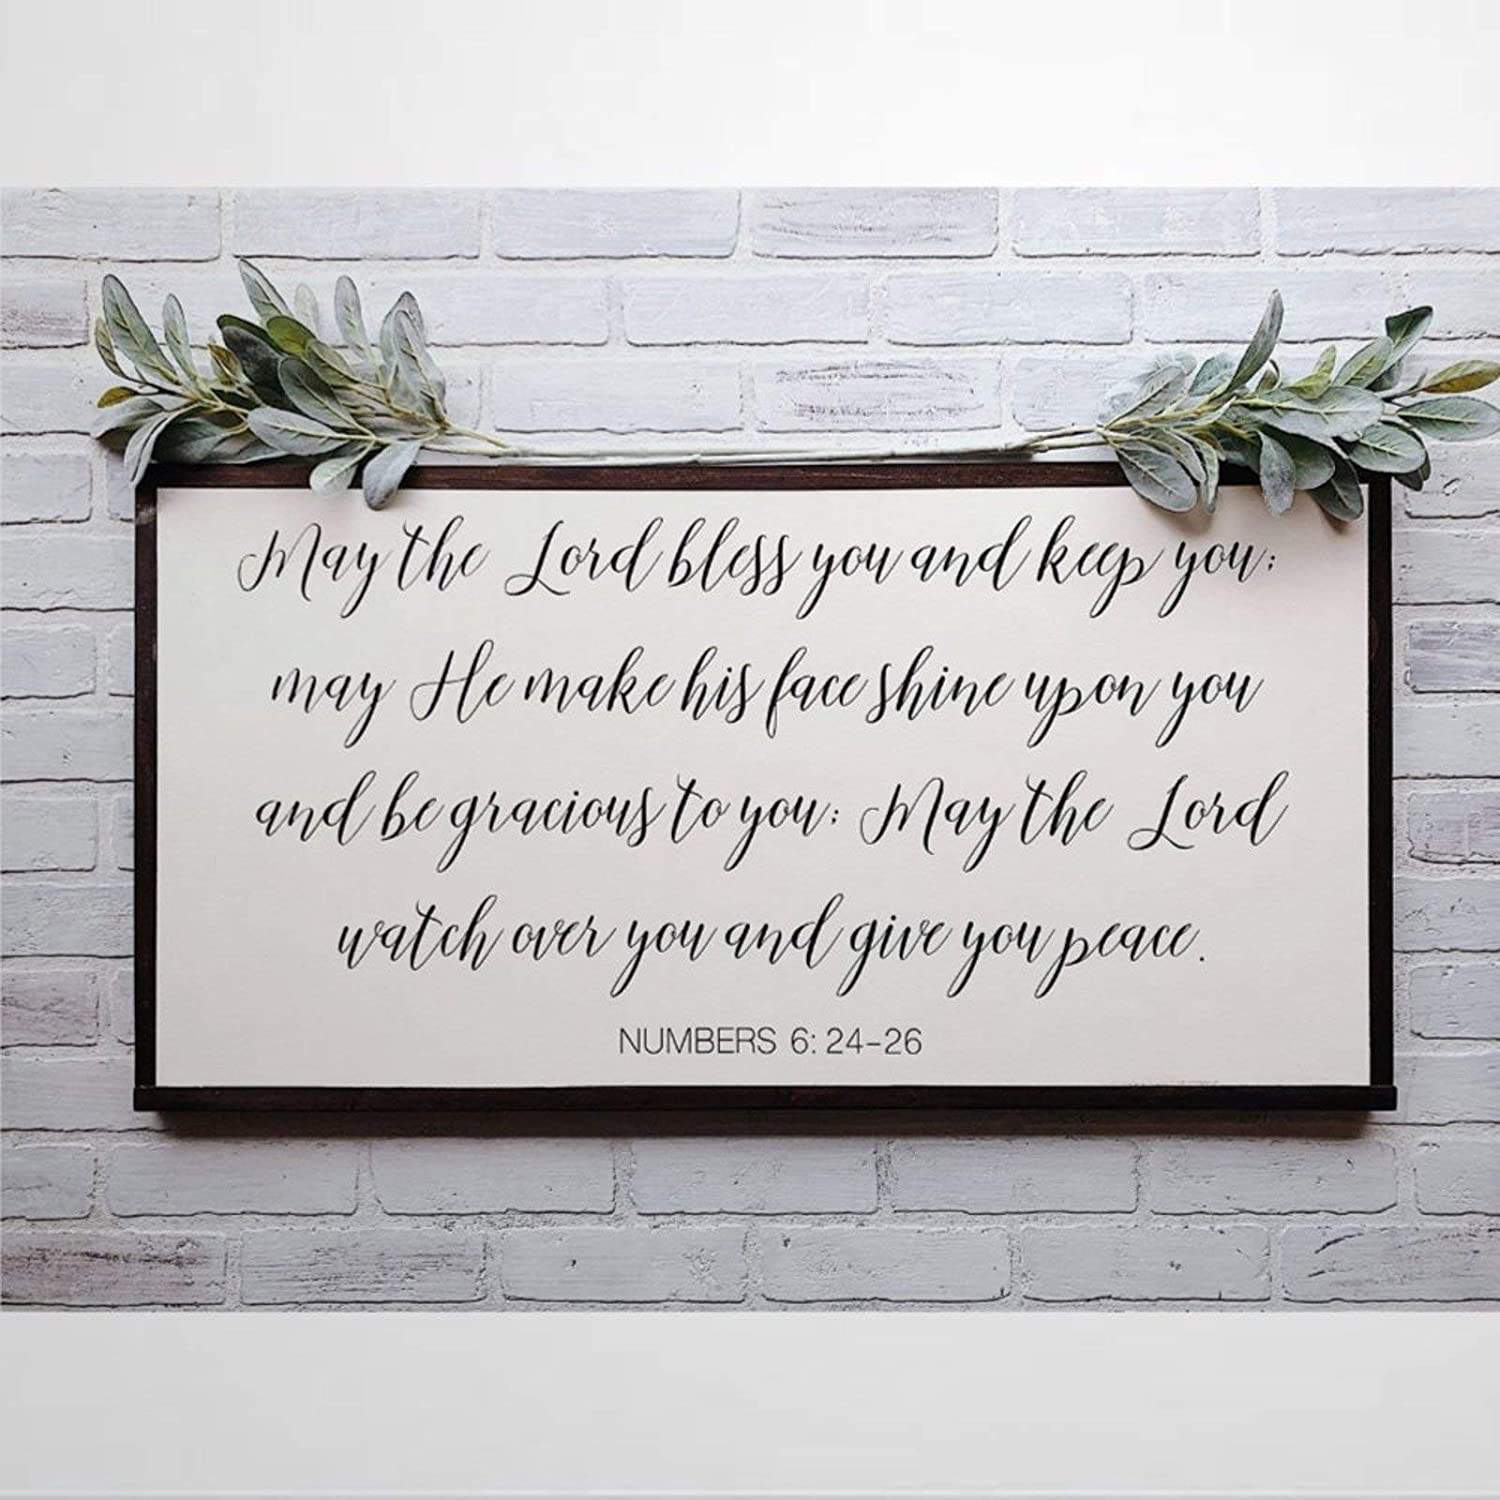 EricauBird May The Lord Bless You Framed Wooden Sign,Keep Numbers Bible Verse Scripture Nursery Wood Wall Decor Sign, Farmhouse Wooden Plaque Art for Home,Gardens, Porch, Gallery Wall, Coffee Shops.